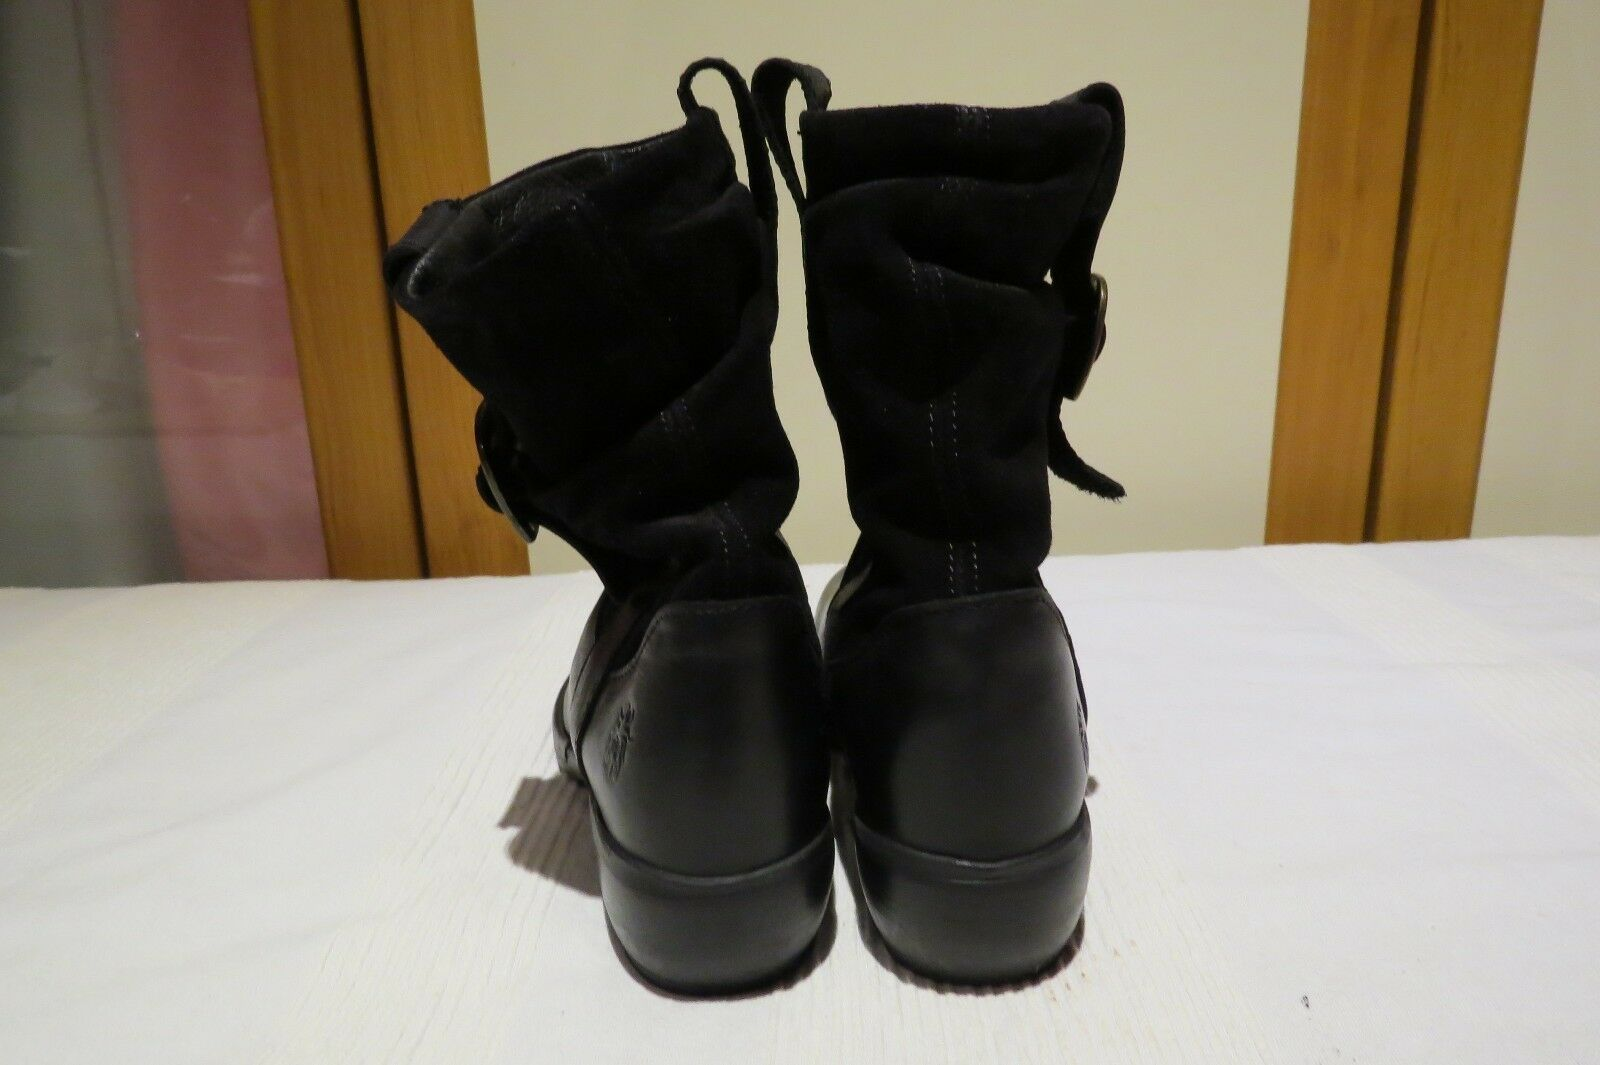 FLY LONDON 'MAHA' BLACK LEATHER & SUEDE BOOTS PULL ON BIKER BOOTS SUEDE RRP 118b45